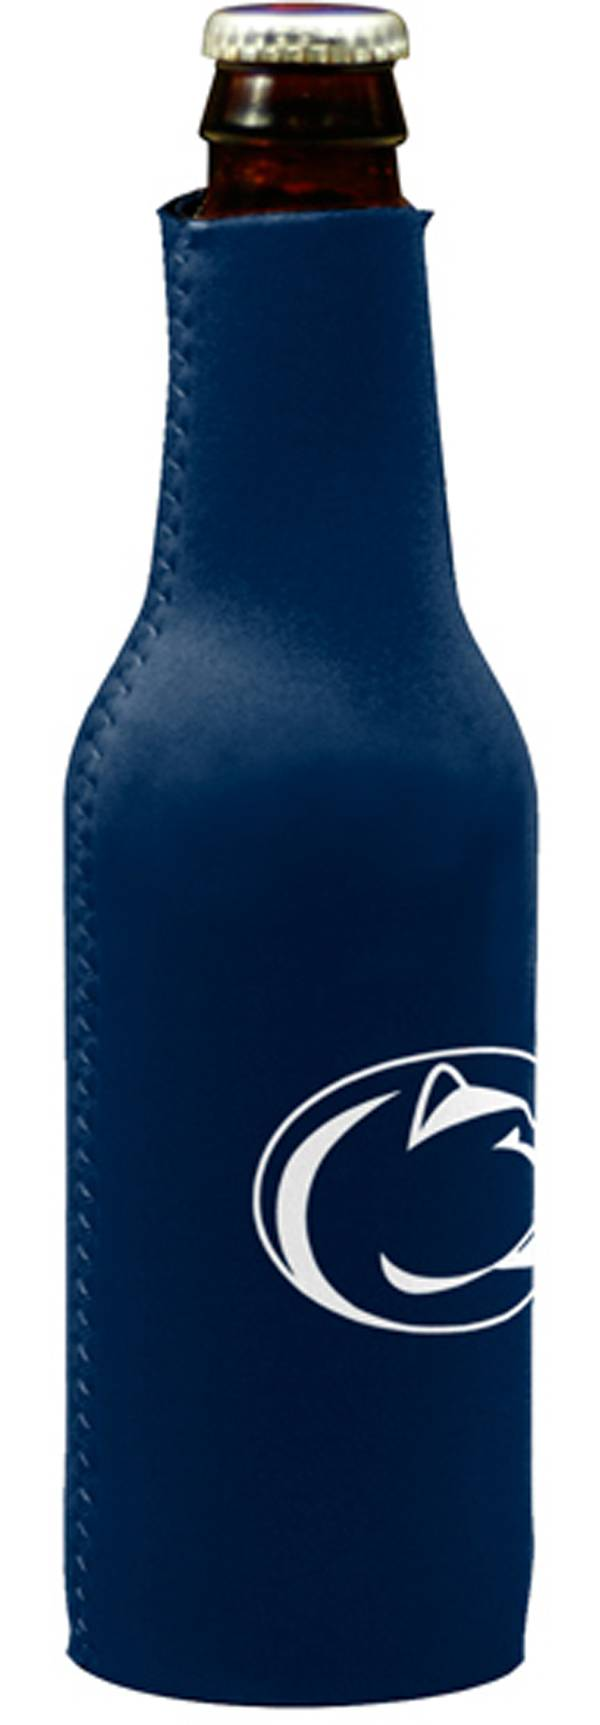 Penn State Nittany Lions Bottle Koozie product image